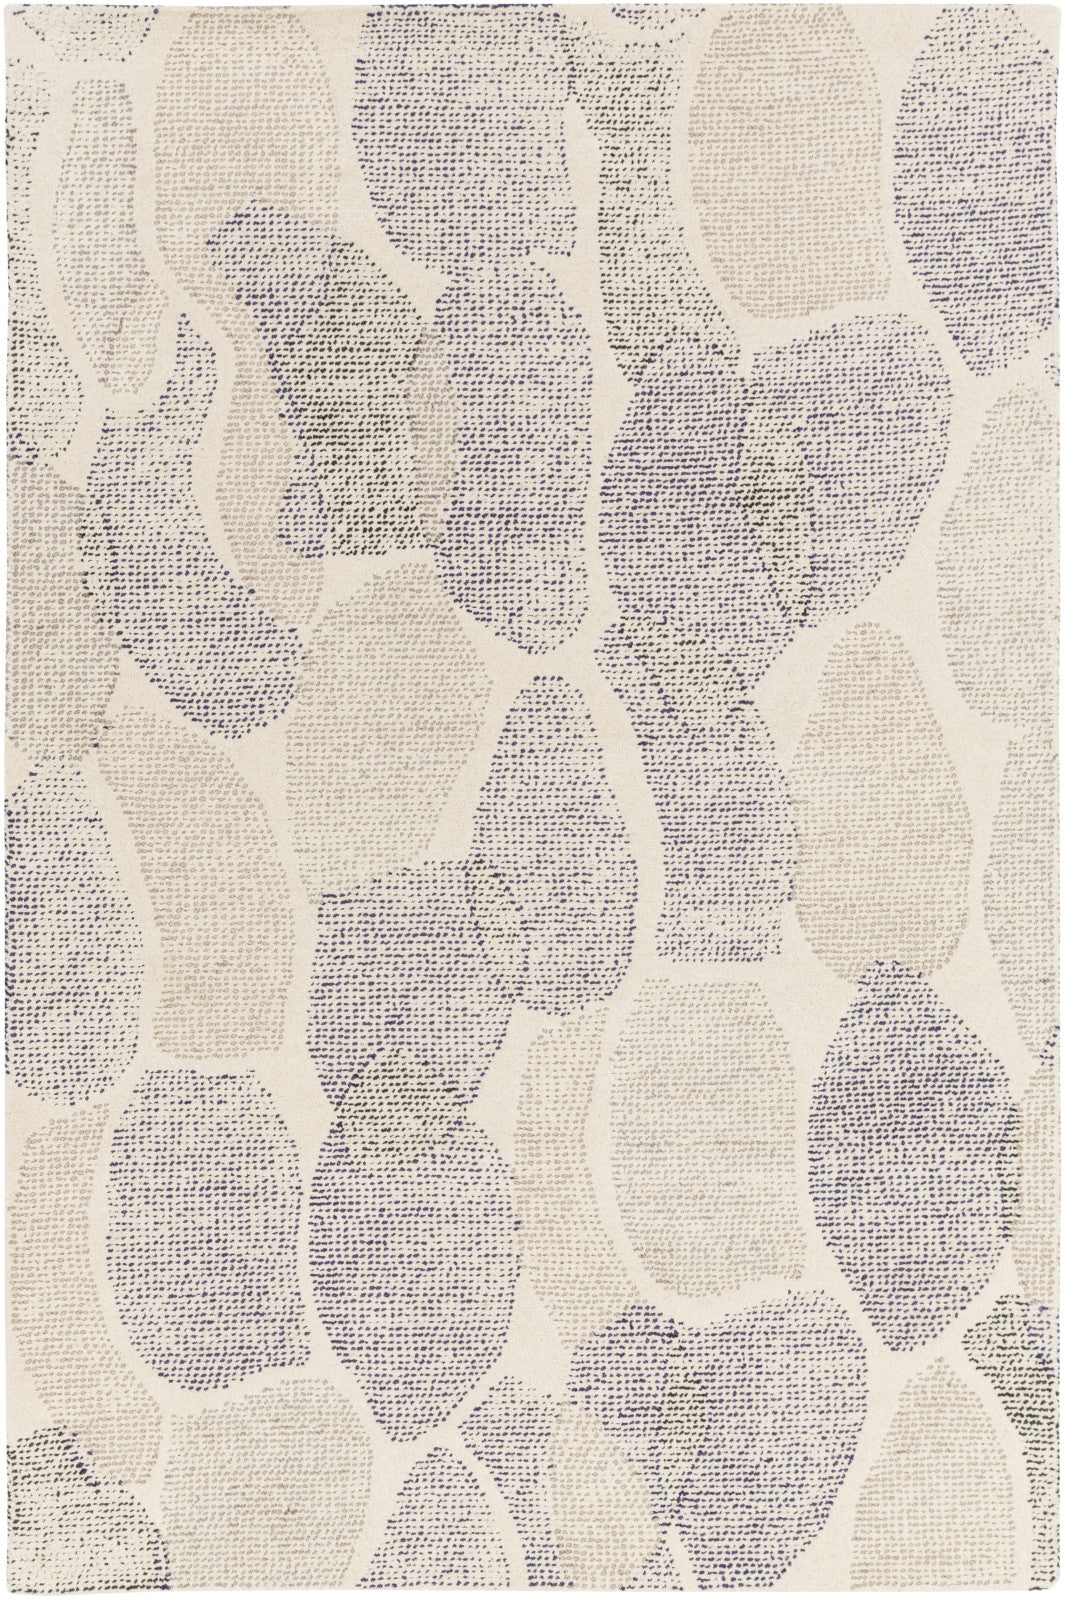 Melody MDY-2010 White Area Rug by Surya